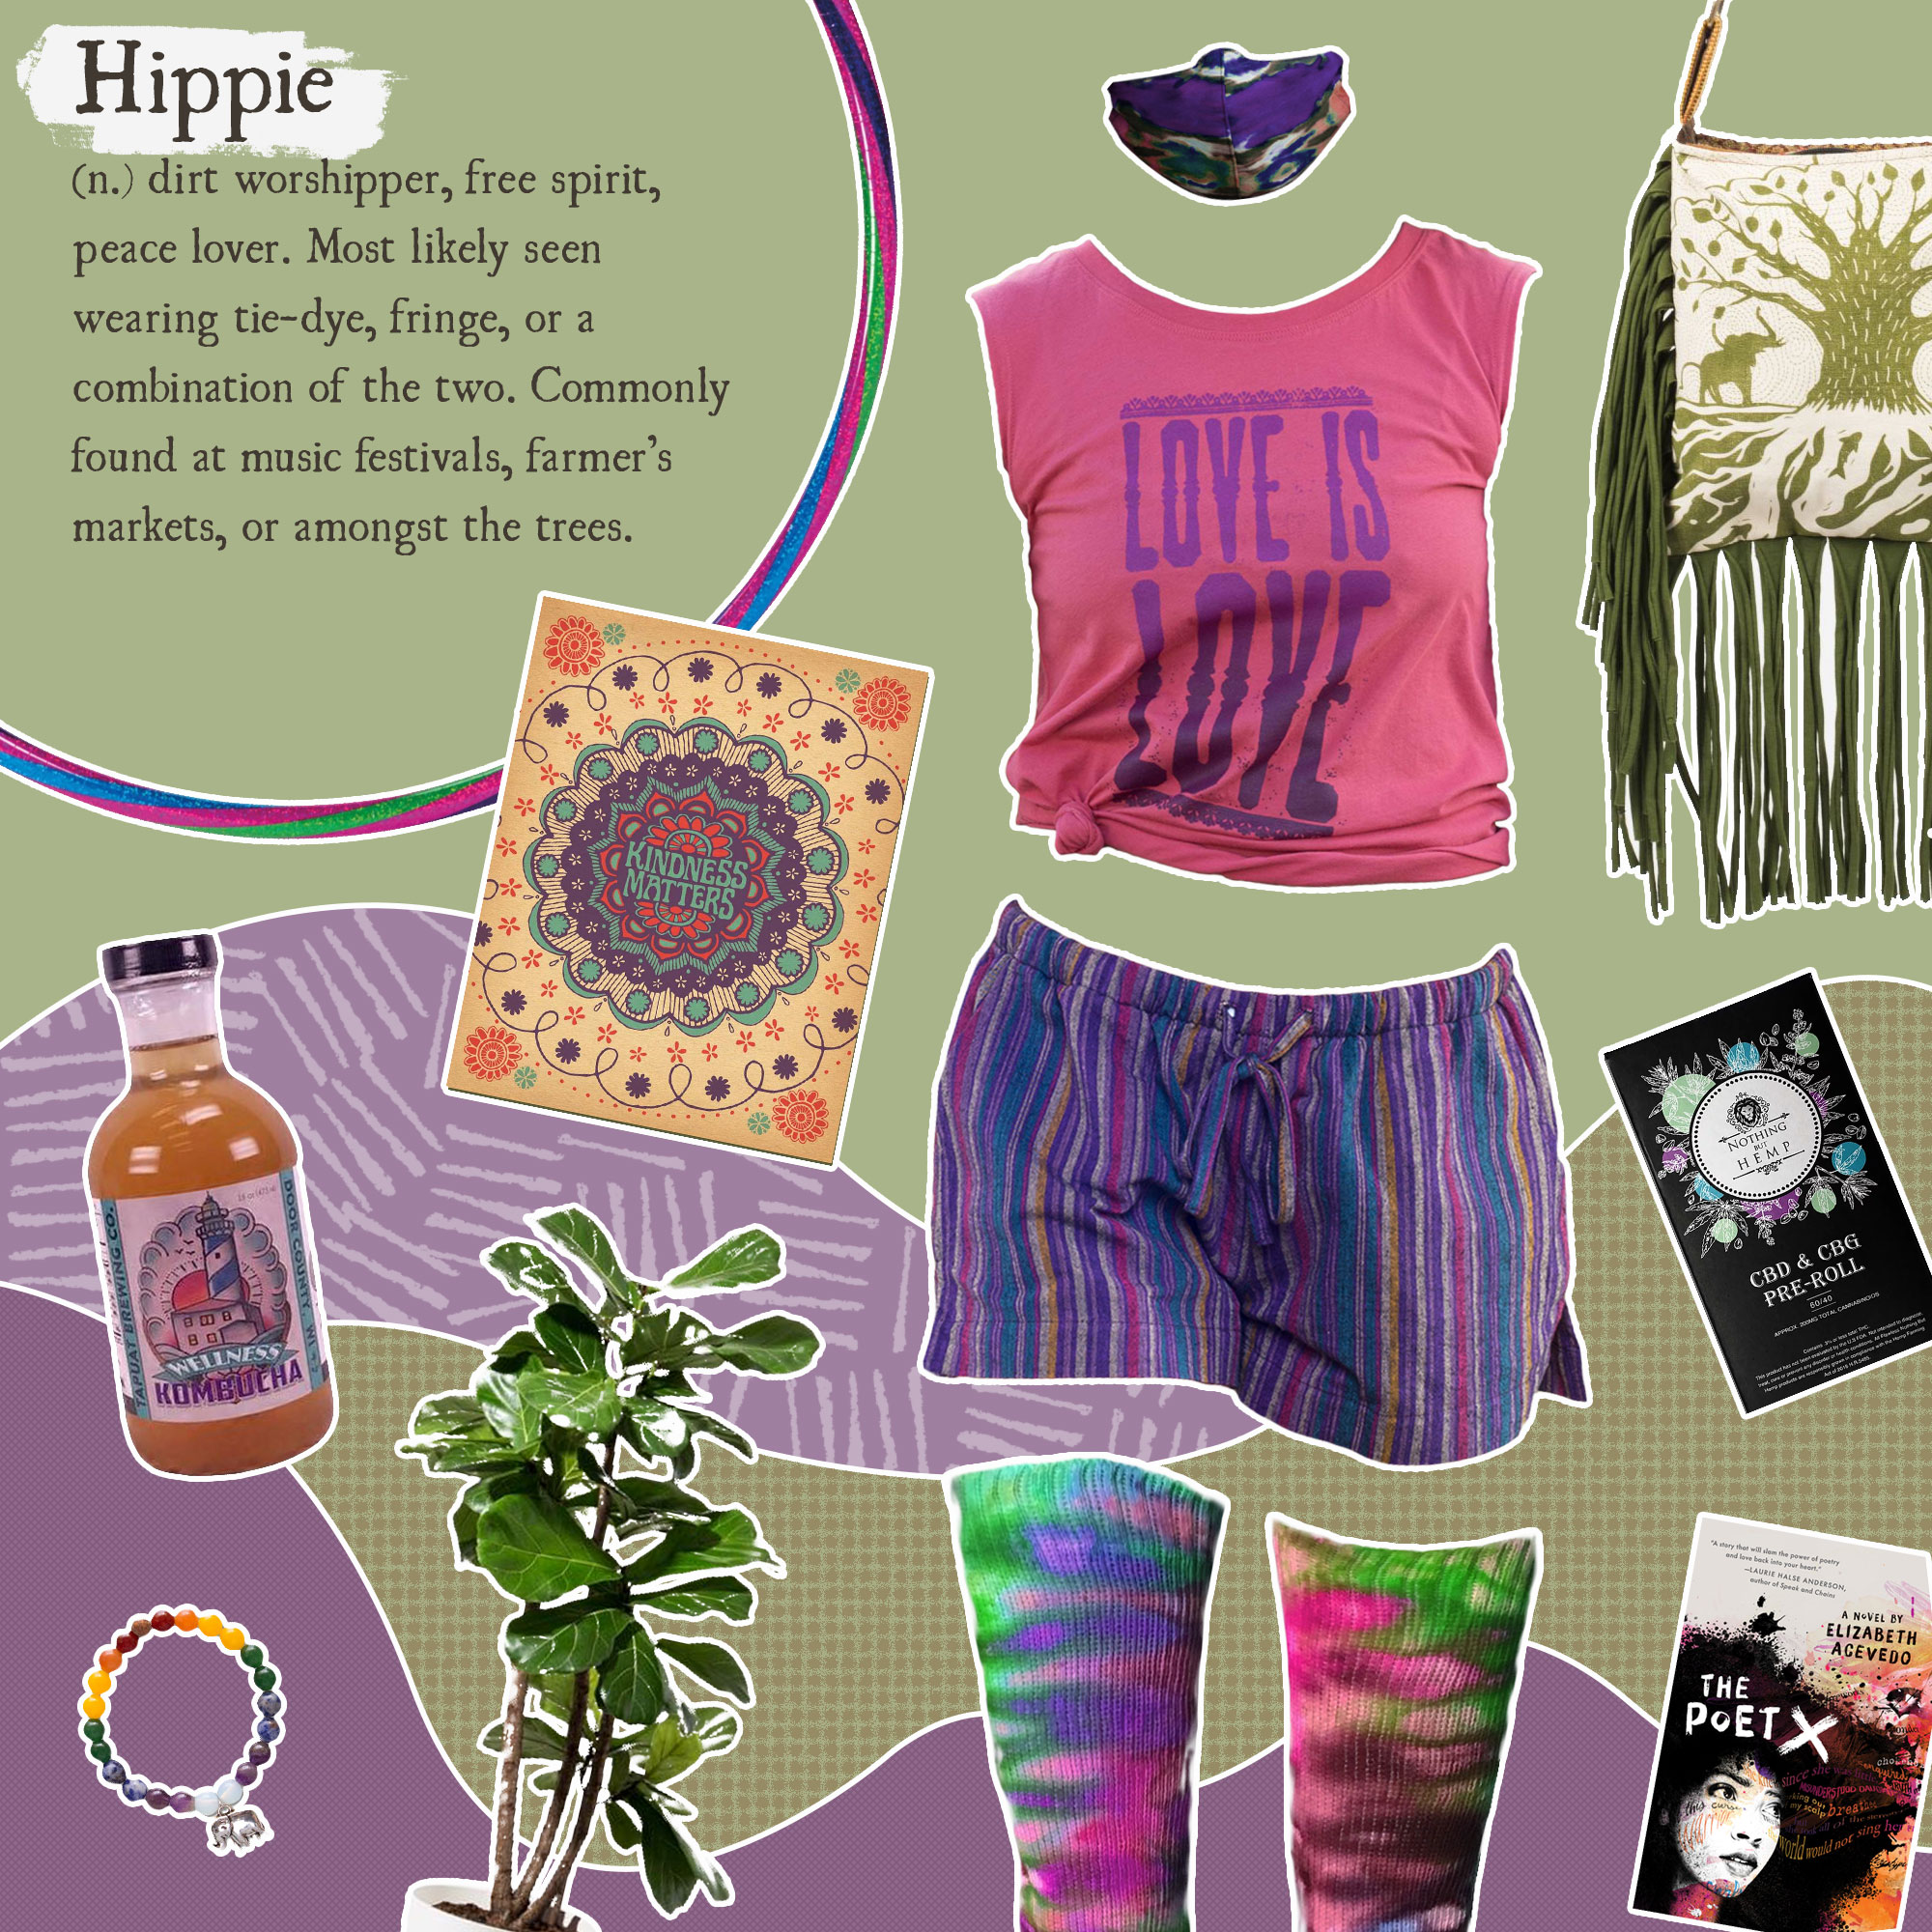 Hippie Blog - What's Your Style? Find Your Best Outfit!